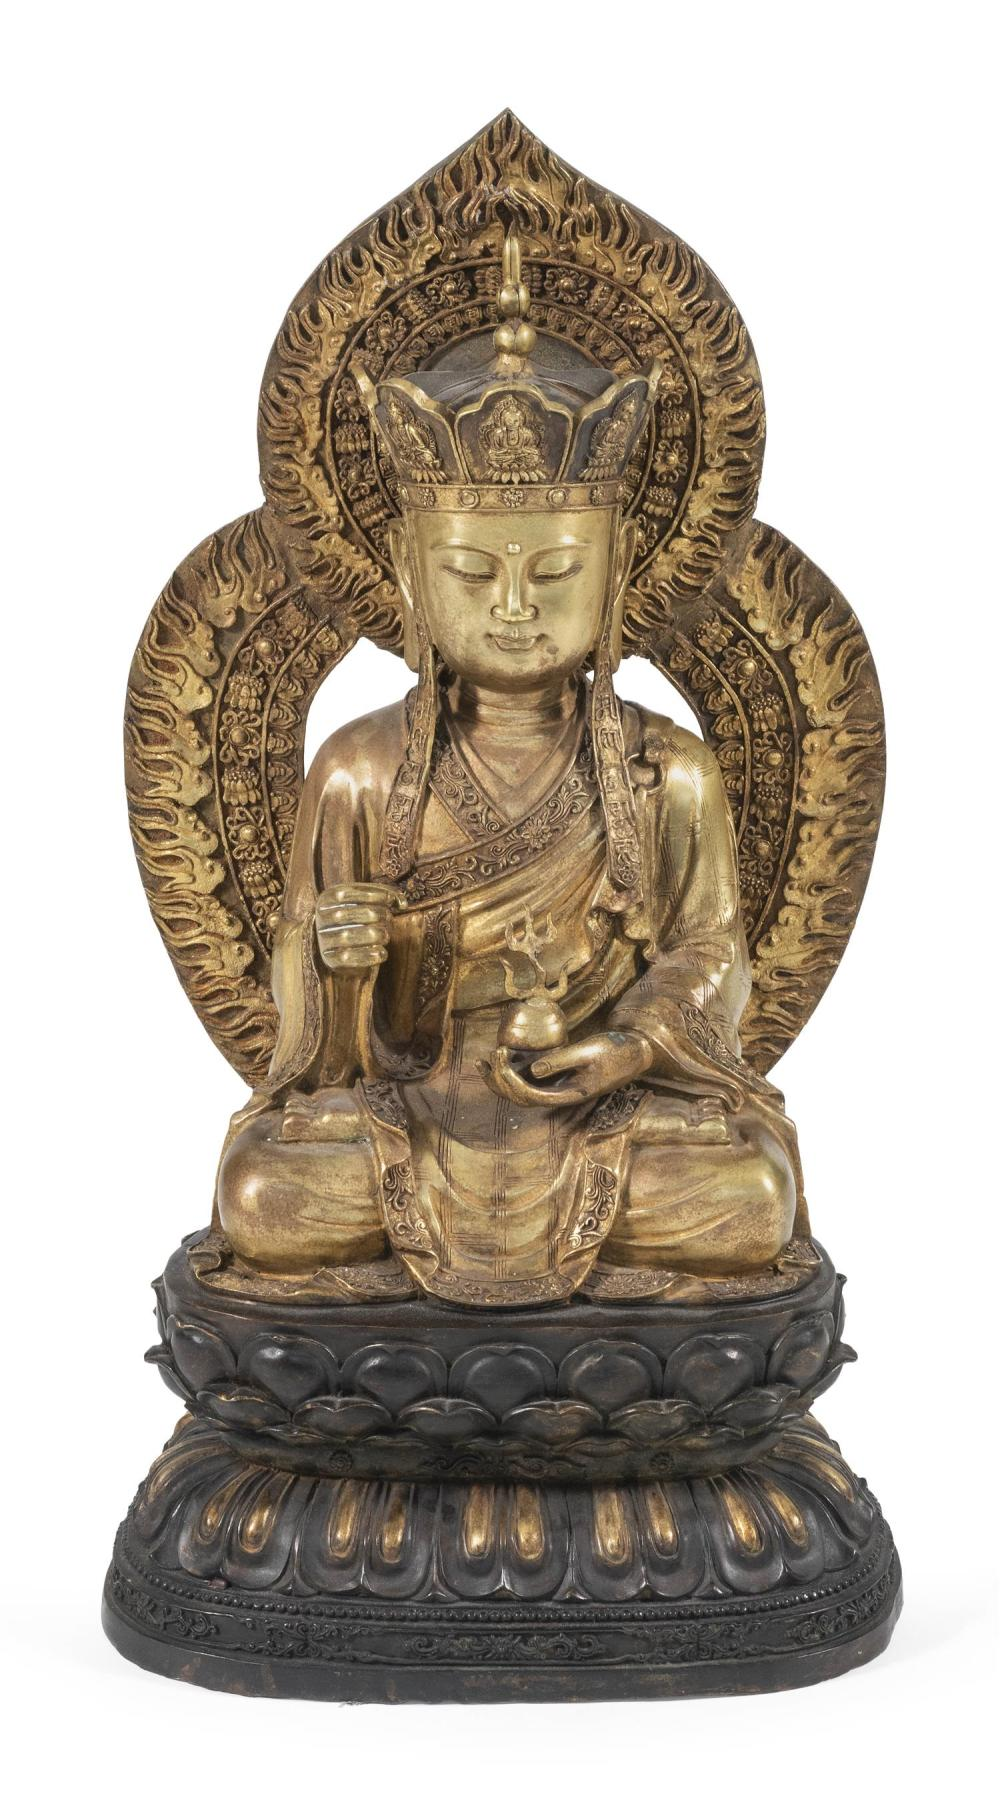 "CHINESE GILT-BRONZE FIGURE OF BUDDHA Seated on double lotus throne, holding a sensor and wearing a monk cap crown. Height 28""."